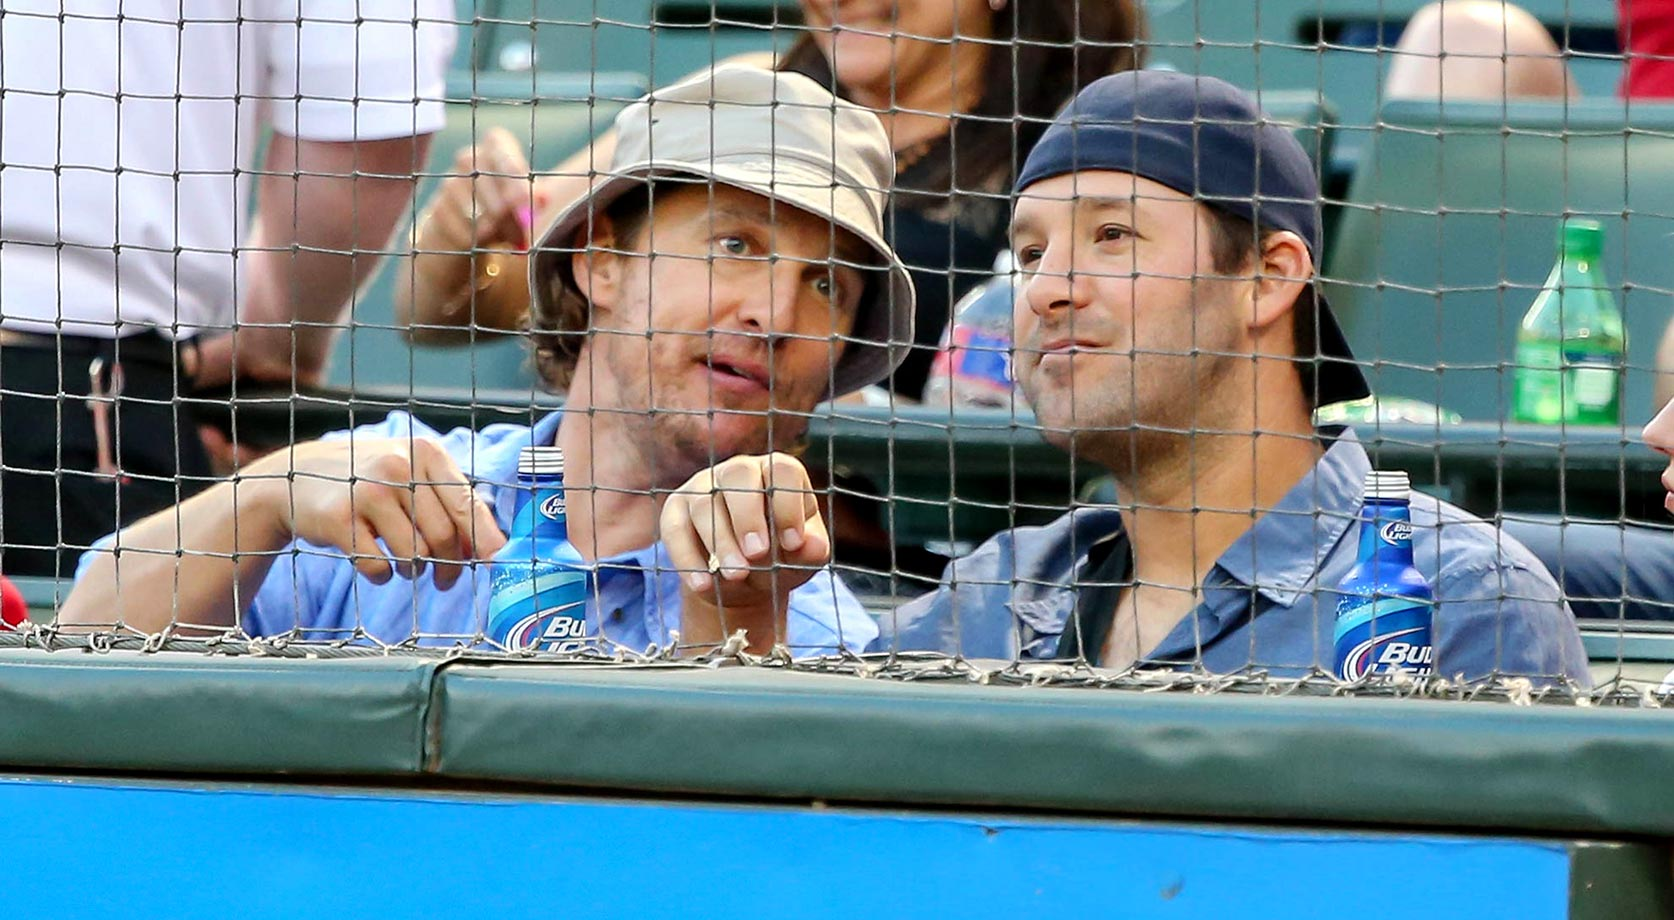 Texas fans Matthew McConaughey and Tony Romo take in a Rangers game.